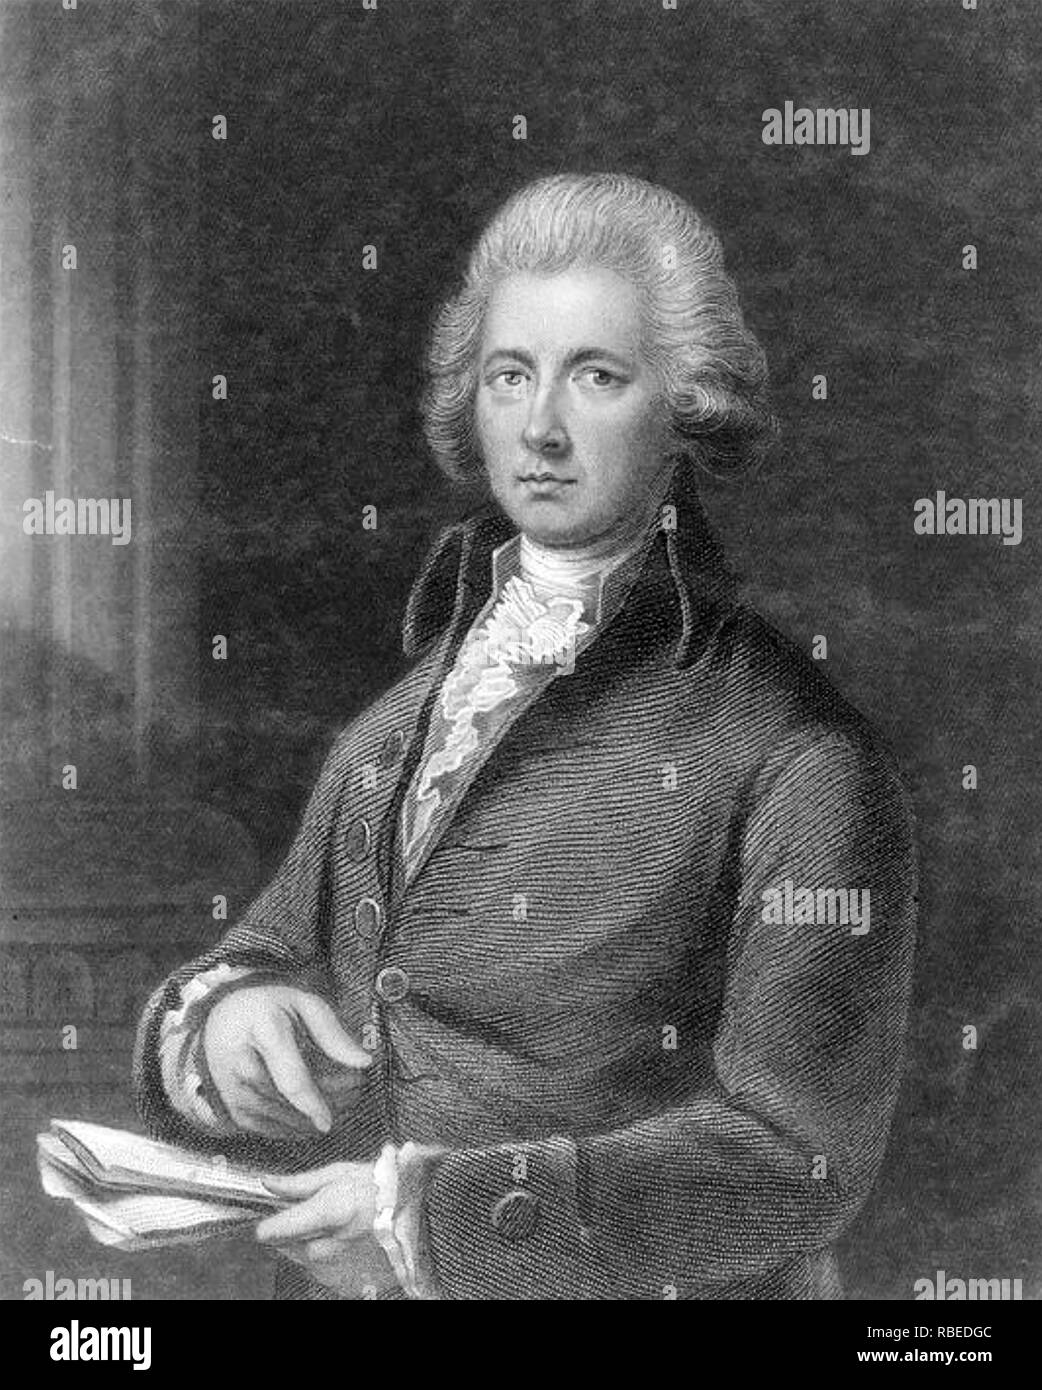 WILLIAM PITT THE YOUNGER (1759-1806) British Tory Prime Minister - Stock Image